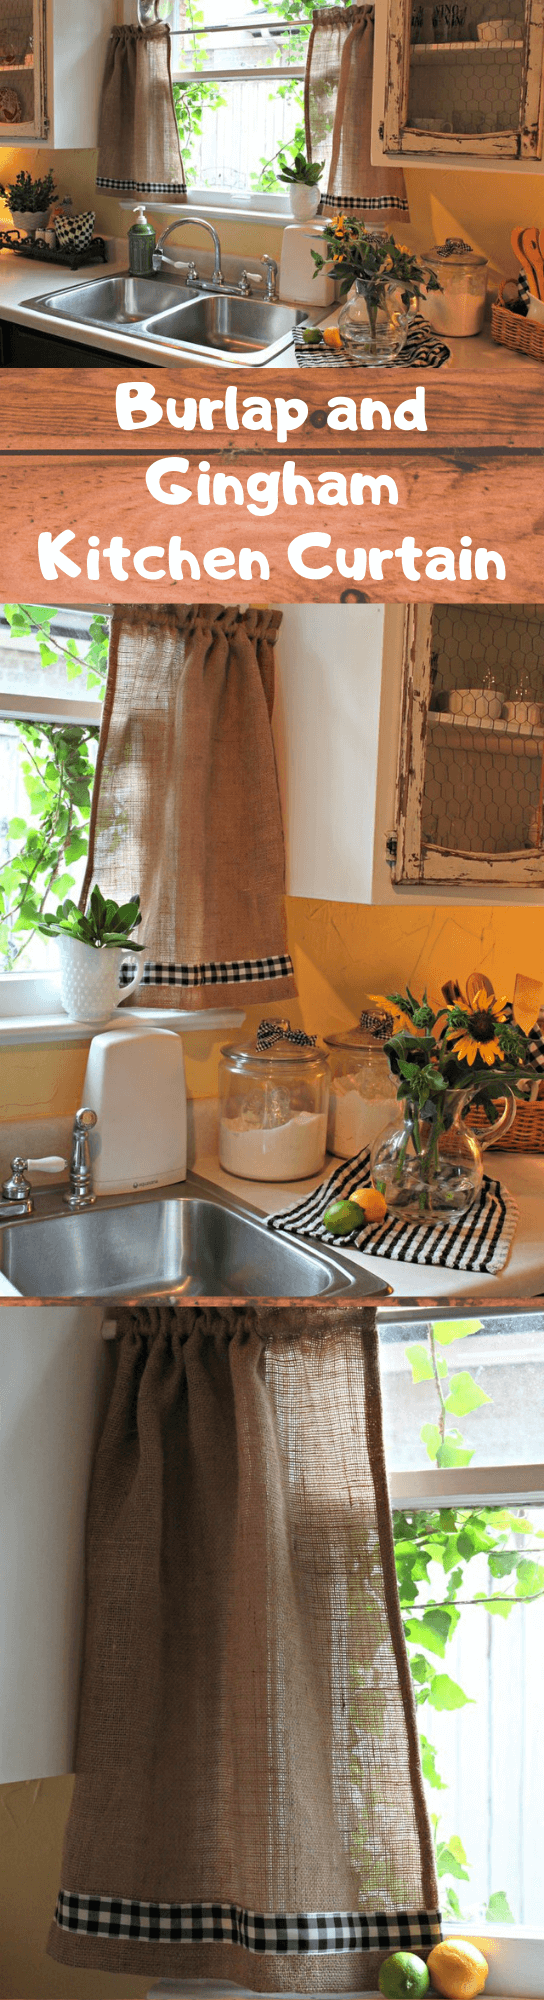 Burlap and Gingham Kitchen Curtain